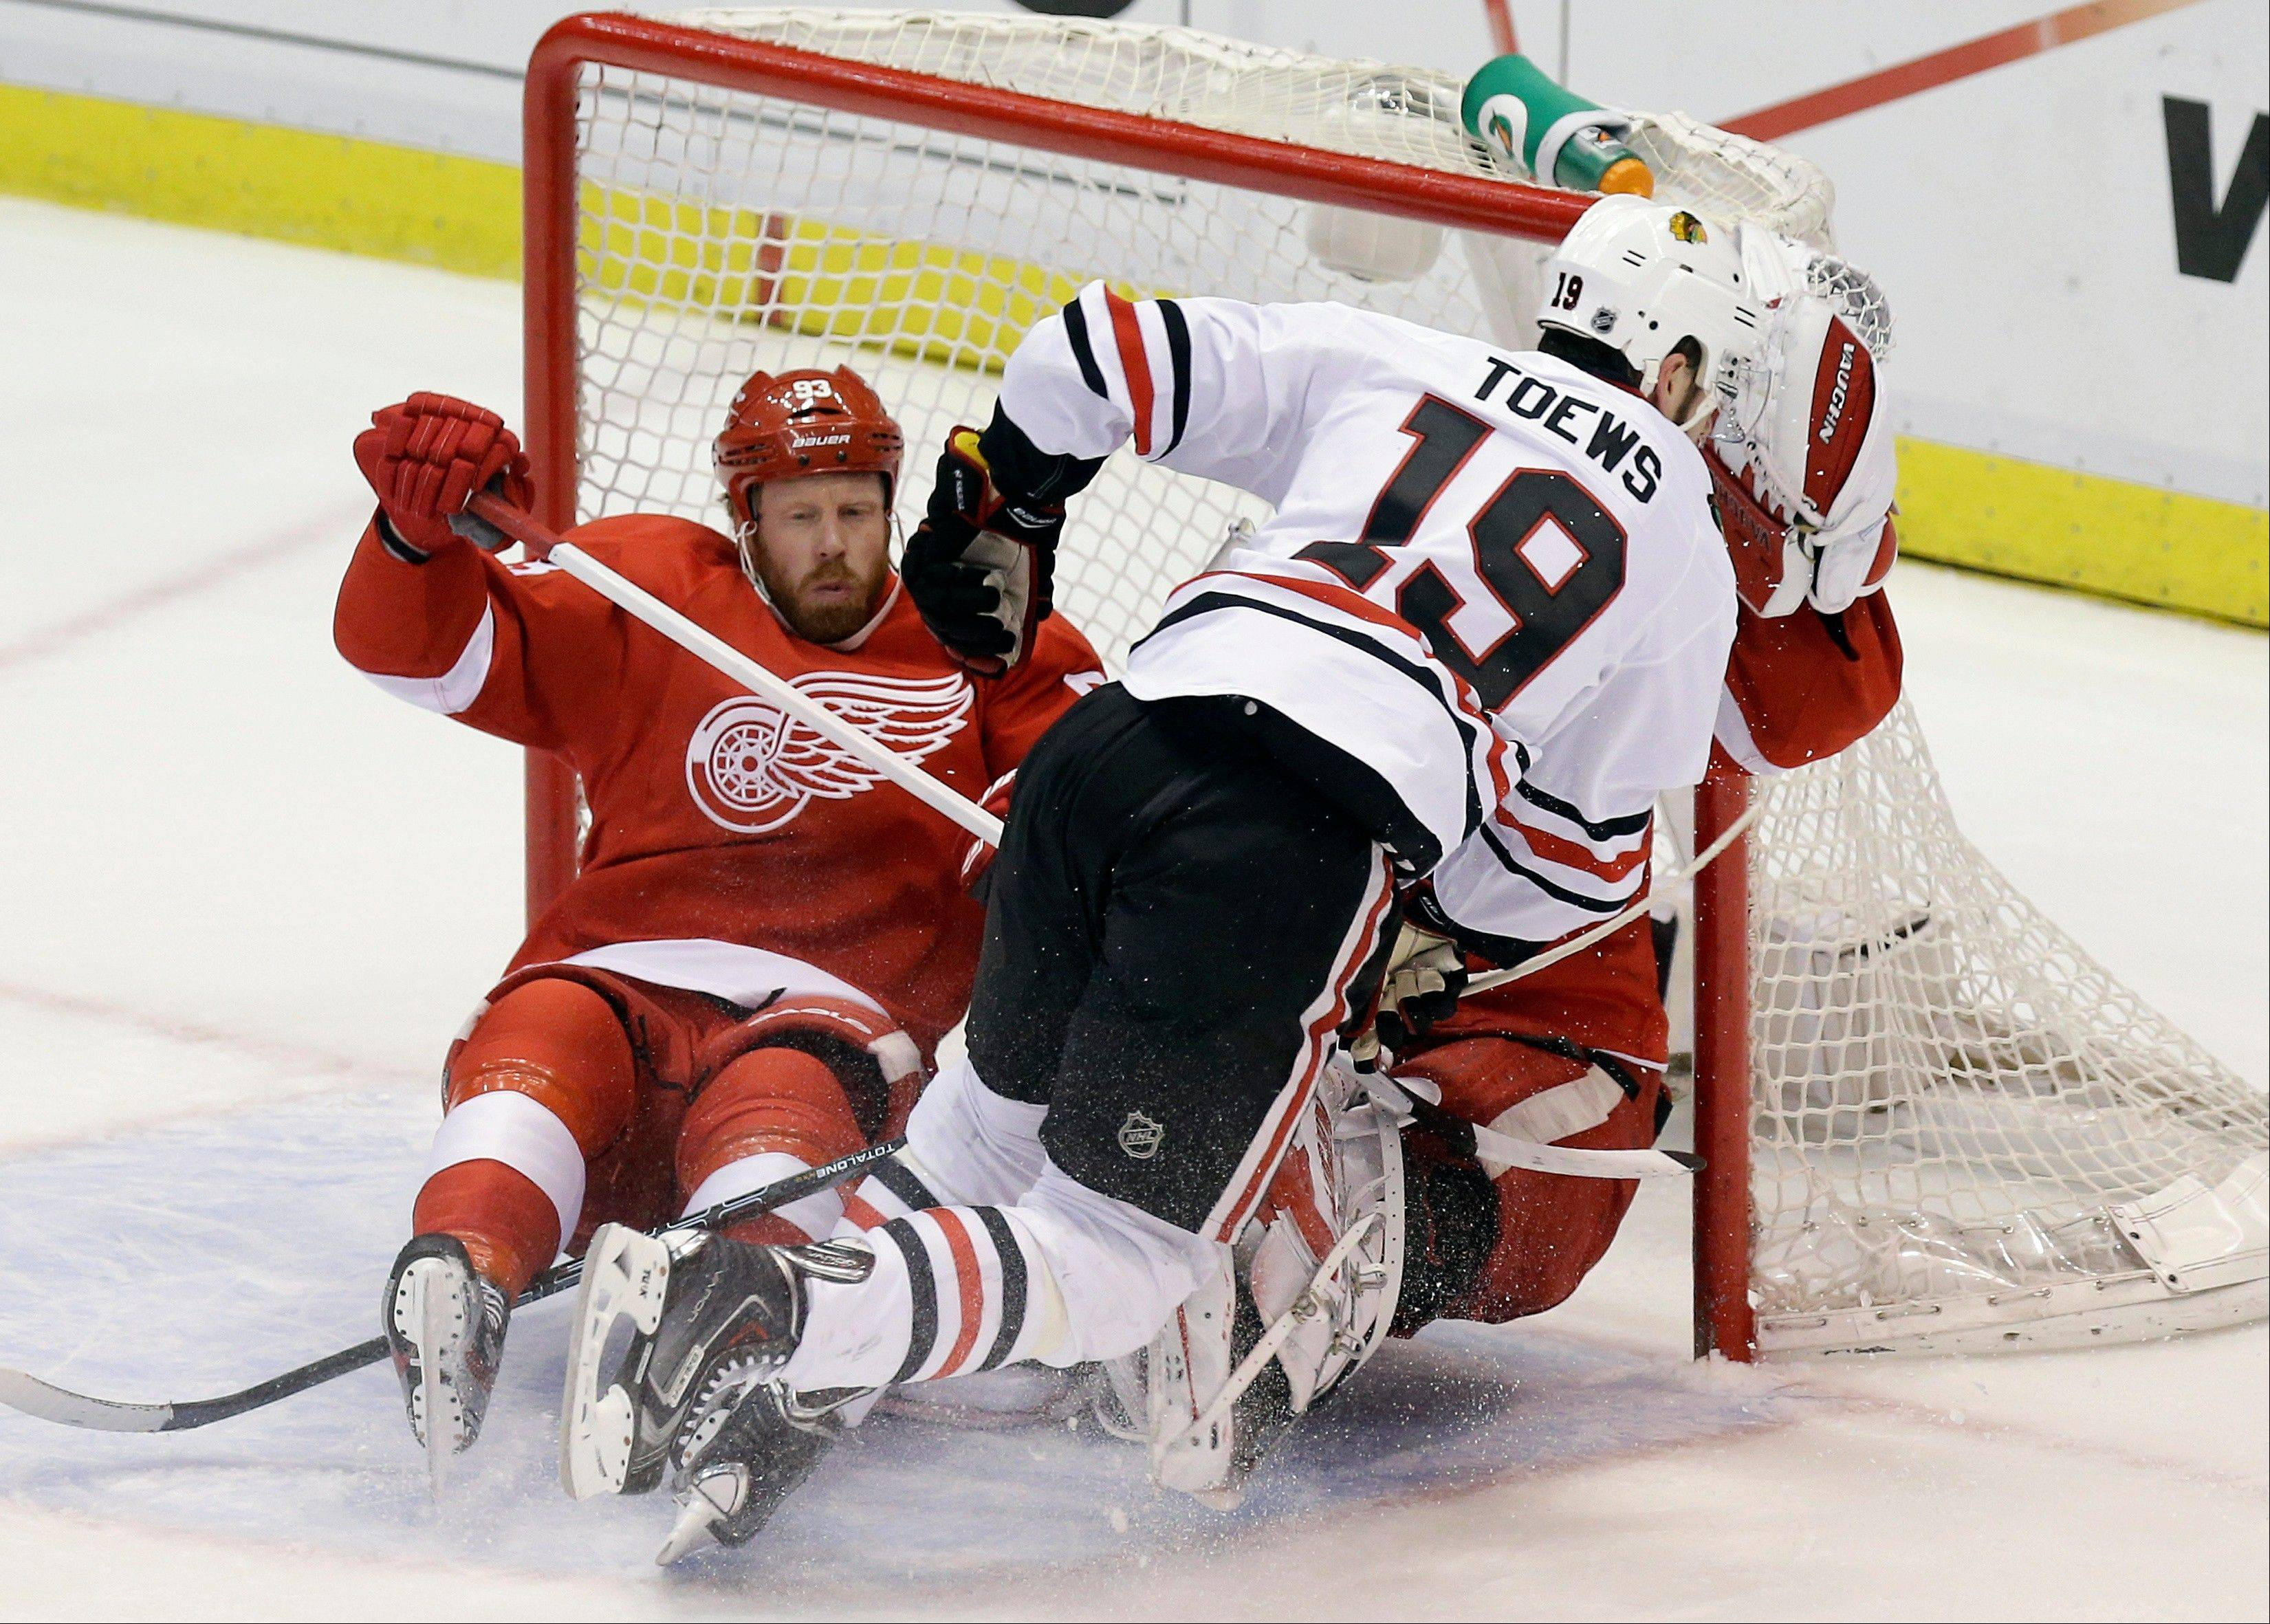 Chicago Blackhawks center Jonathan Toews (19) crashes into Detroit Red Wings goalie Jimmy Howard and left wing Johan Franzen (93), of Sweden, left, during the first period of Game 6 of the NHL hockey Stanley Cup playoffs Western Conference semifinals in Detroit, Monday, May 27, 2013.